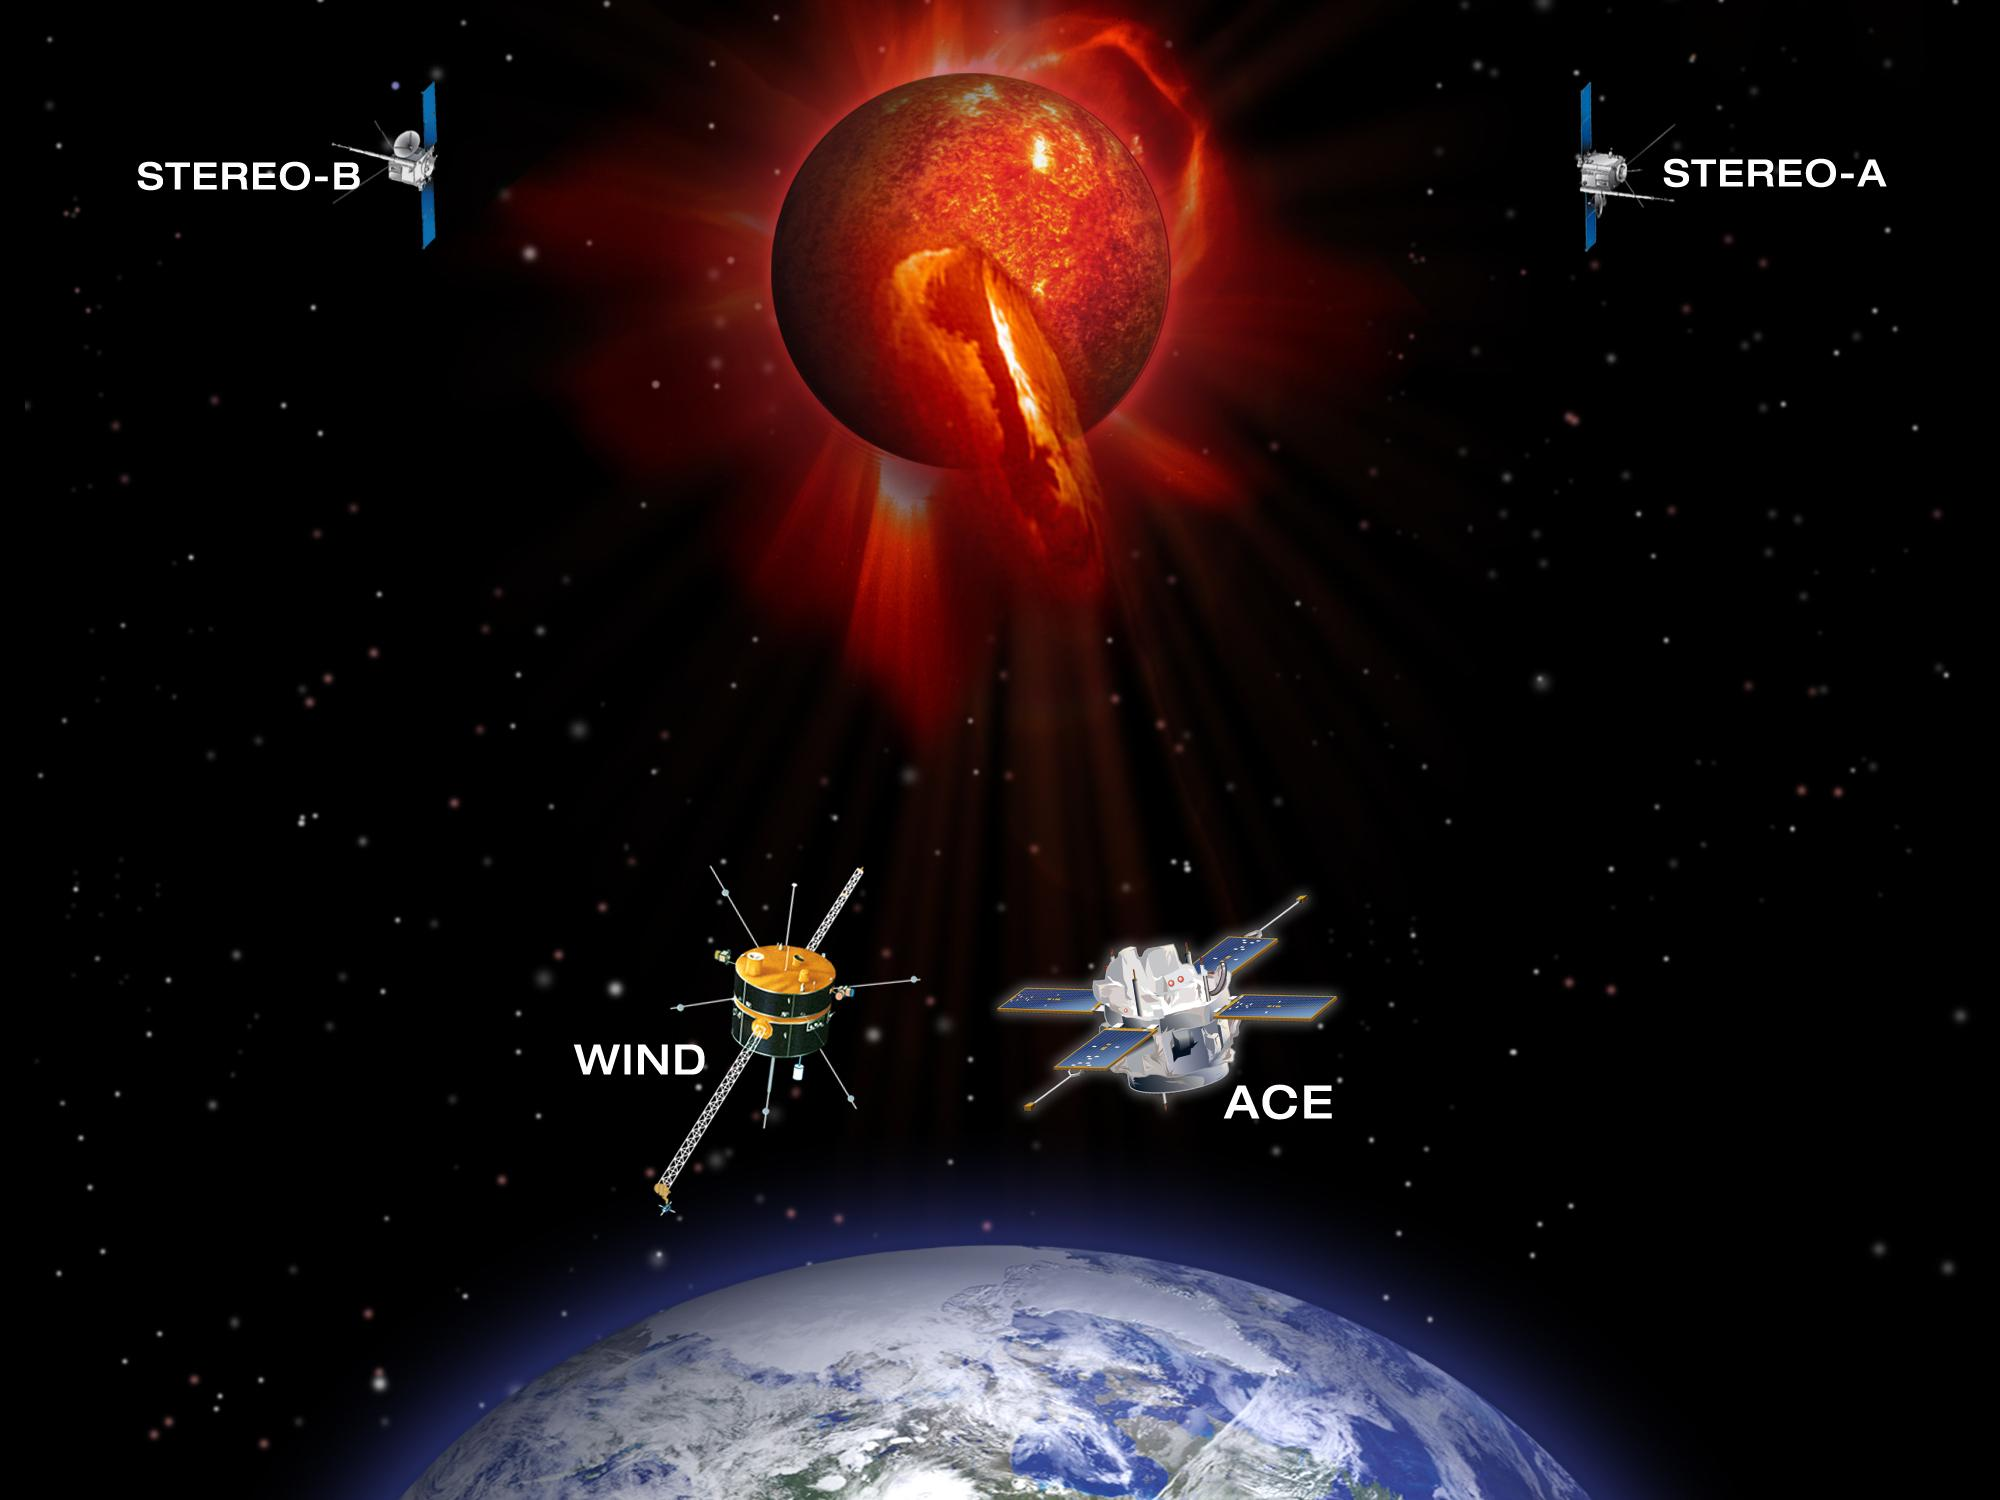 NASA - Tracking Space Weather Events